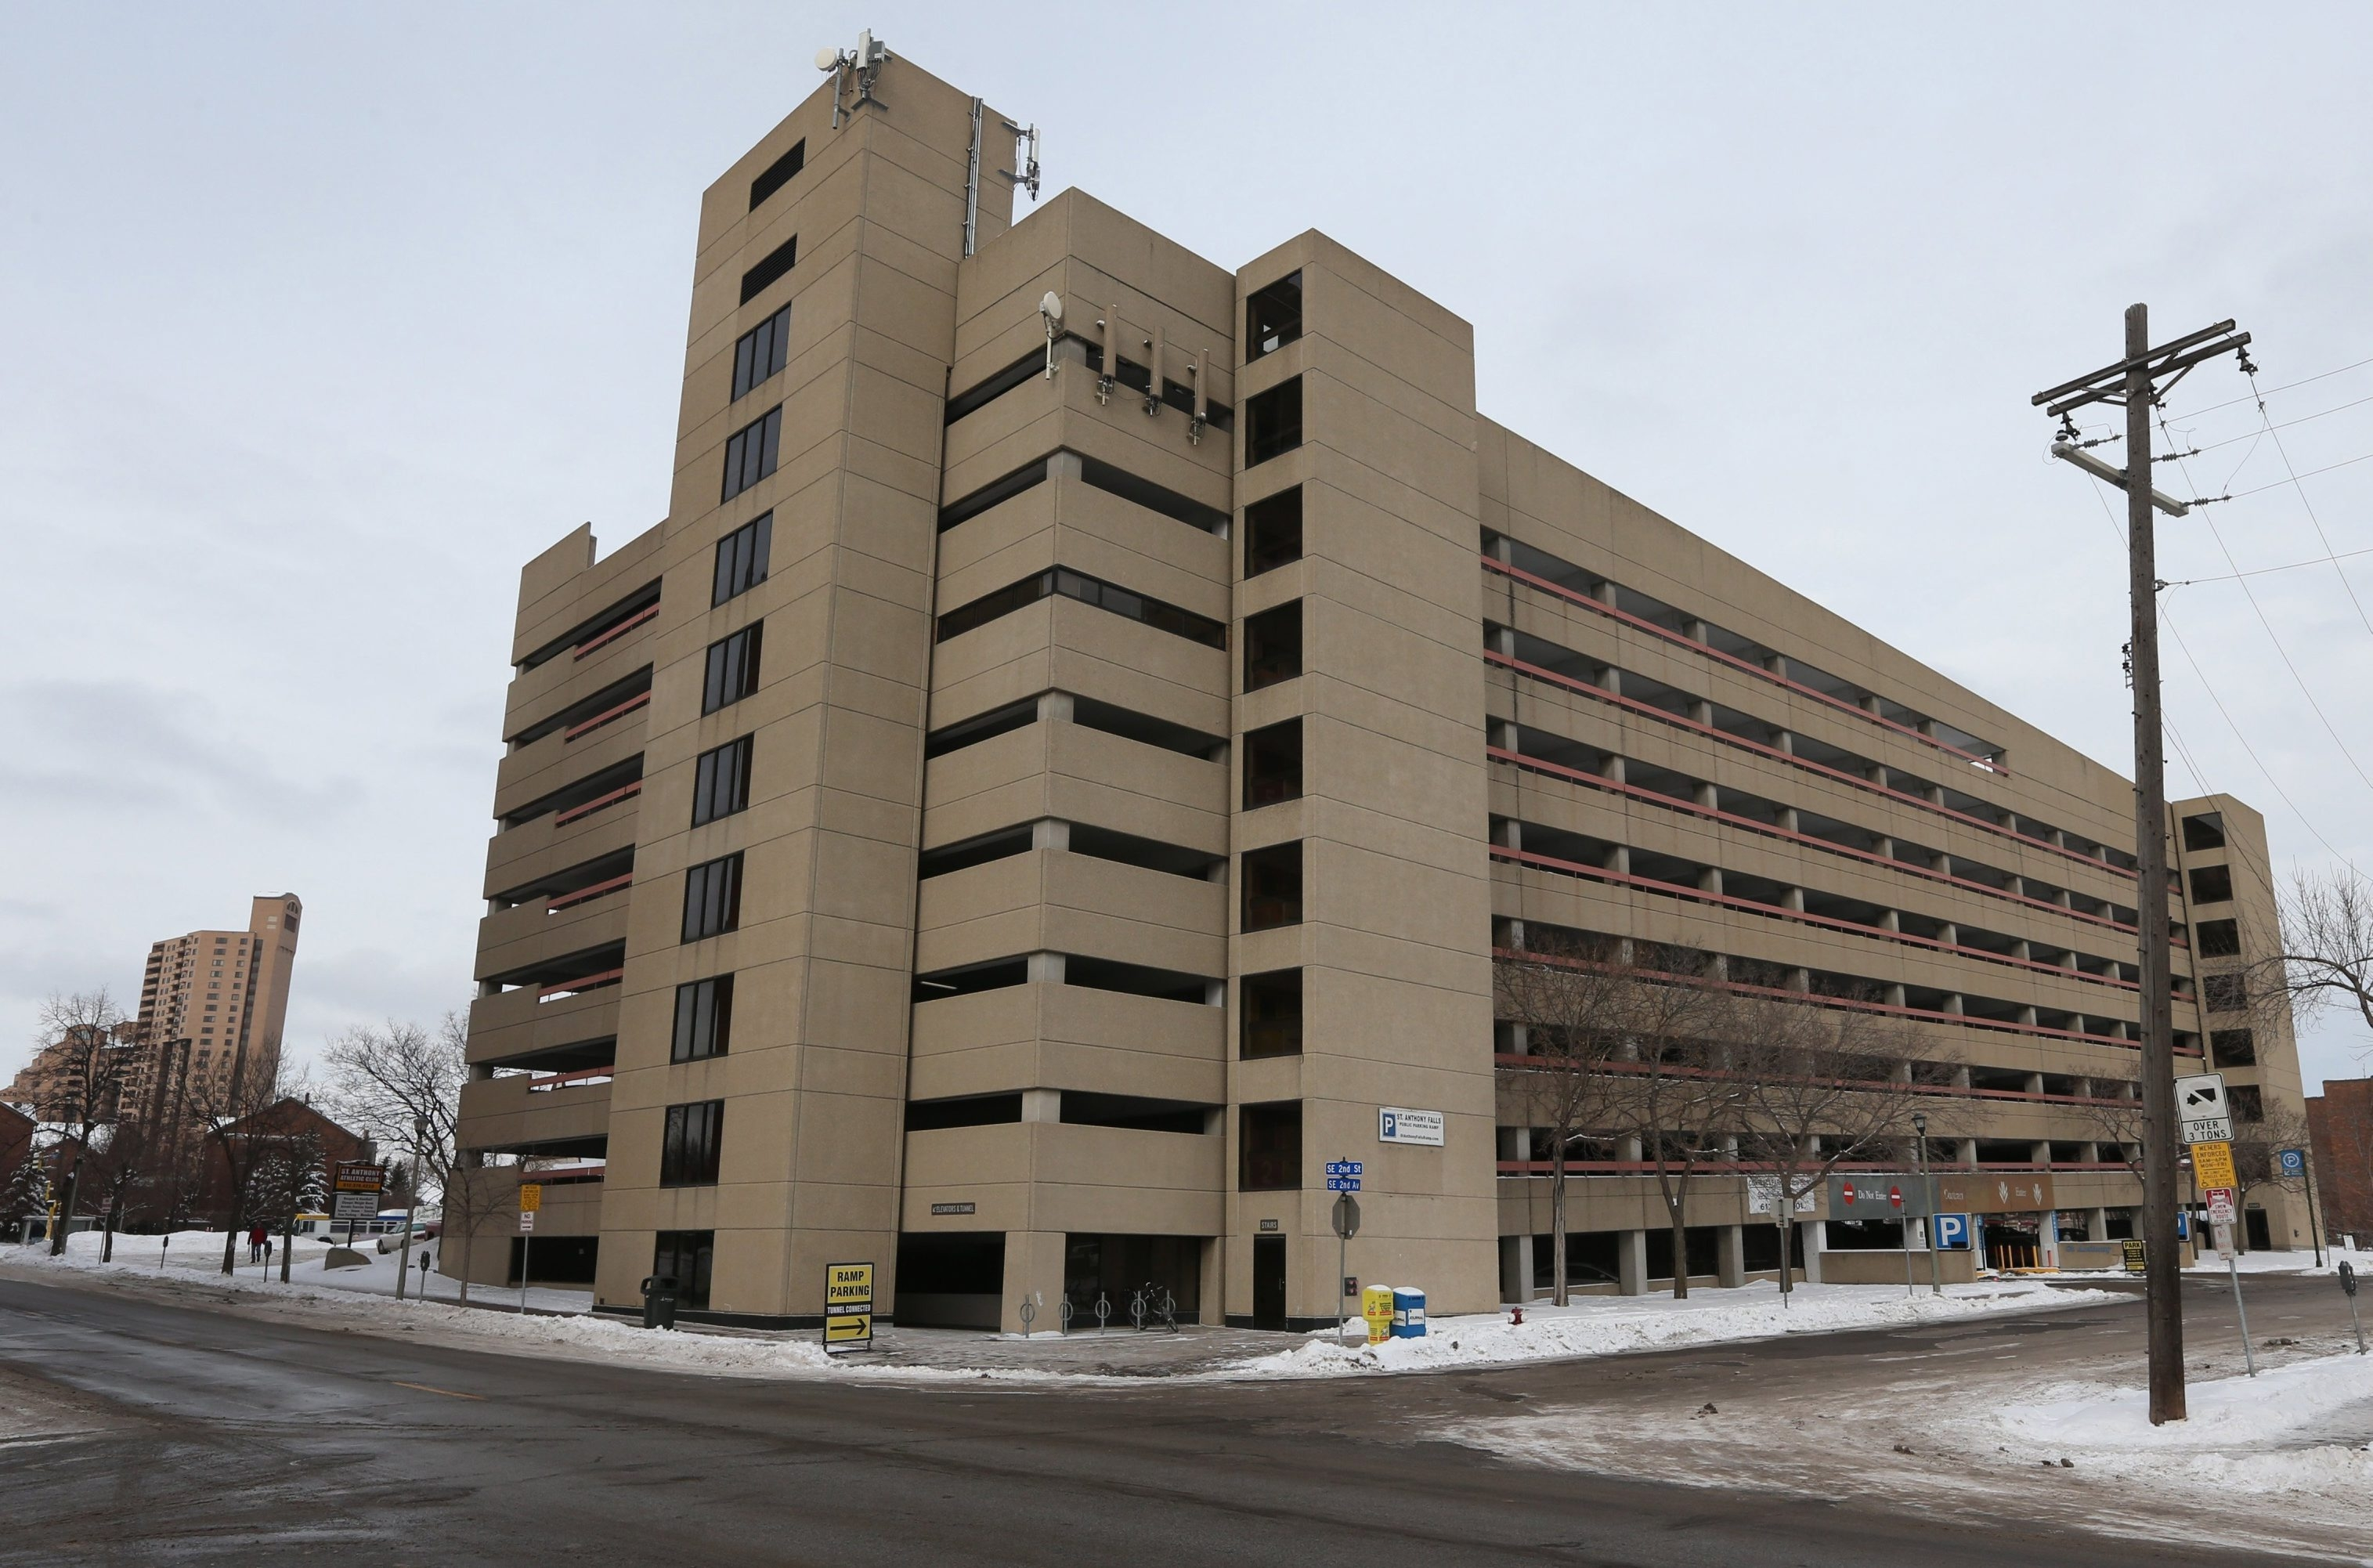 developers finding new uses for old parking garages the buffalo news the cuningham group a minneapolis architectural firm has proposed adding 70 to 75 affordable